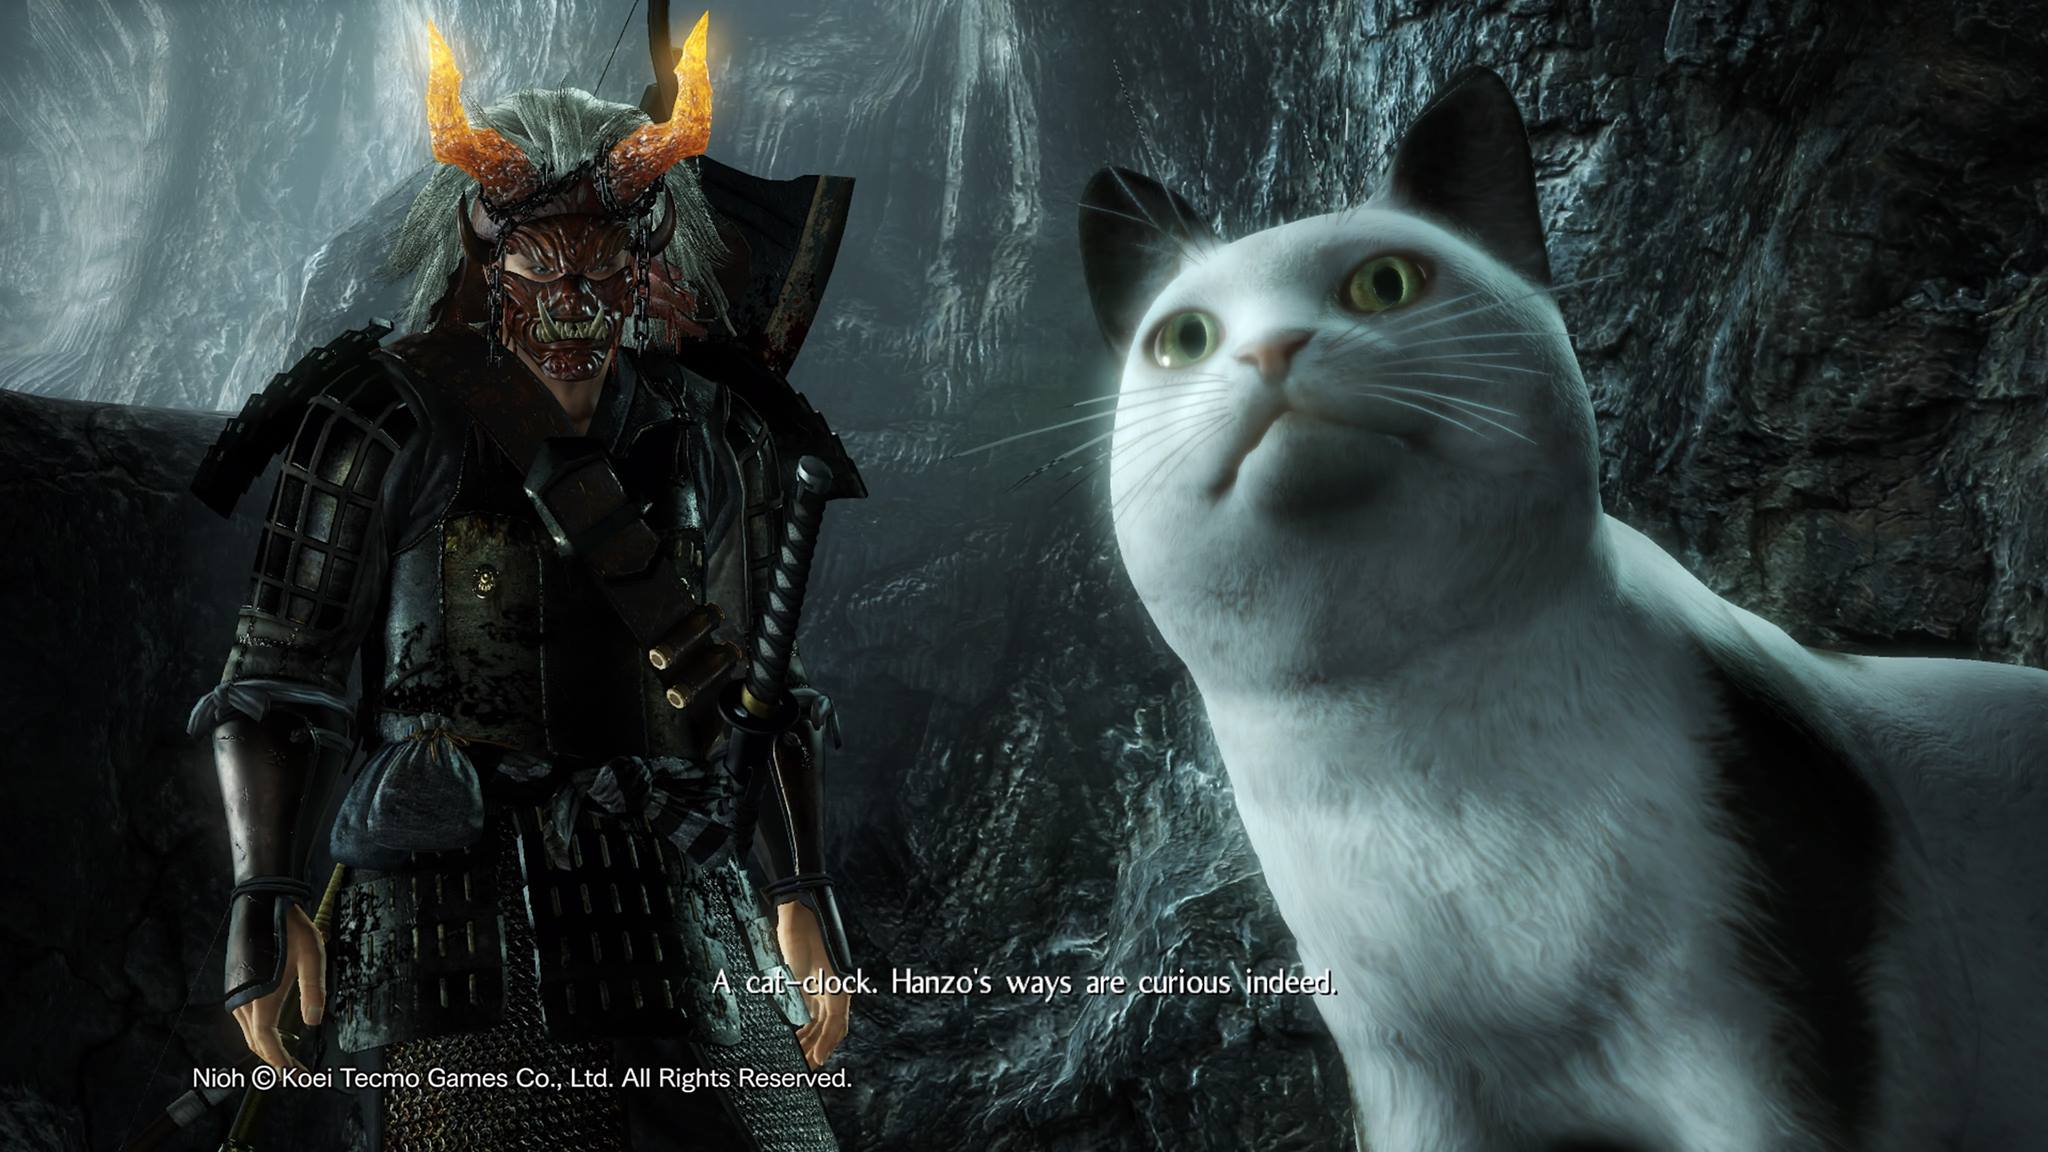 Download Nioh Game HD 4k Wallpapers In 2048x1152 Screen Resolution